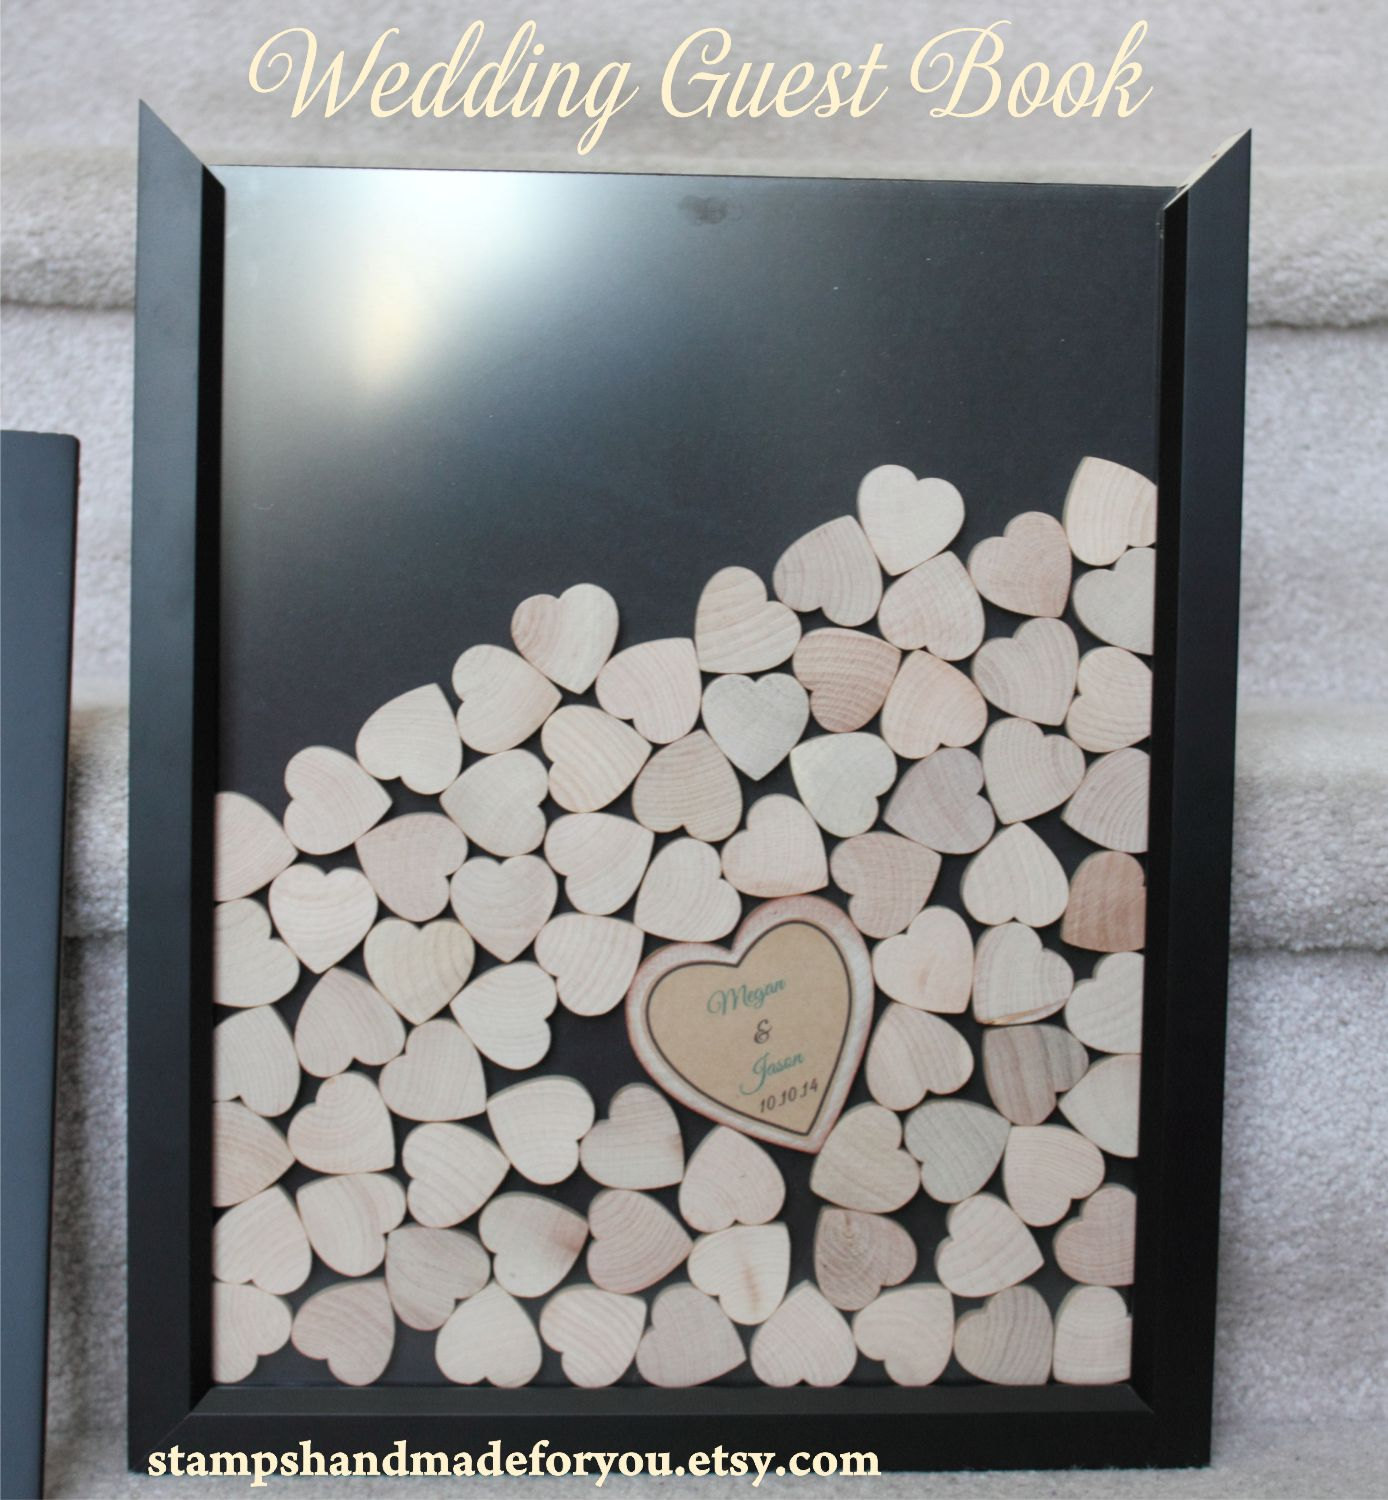 Wedding Guest Book Hearts Unique Heart Guestbook Wood Frame Included 11x14 Instruction Card By Stampshandmadeforyou On Etsy